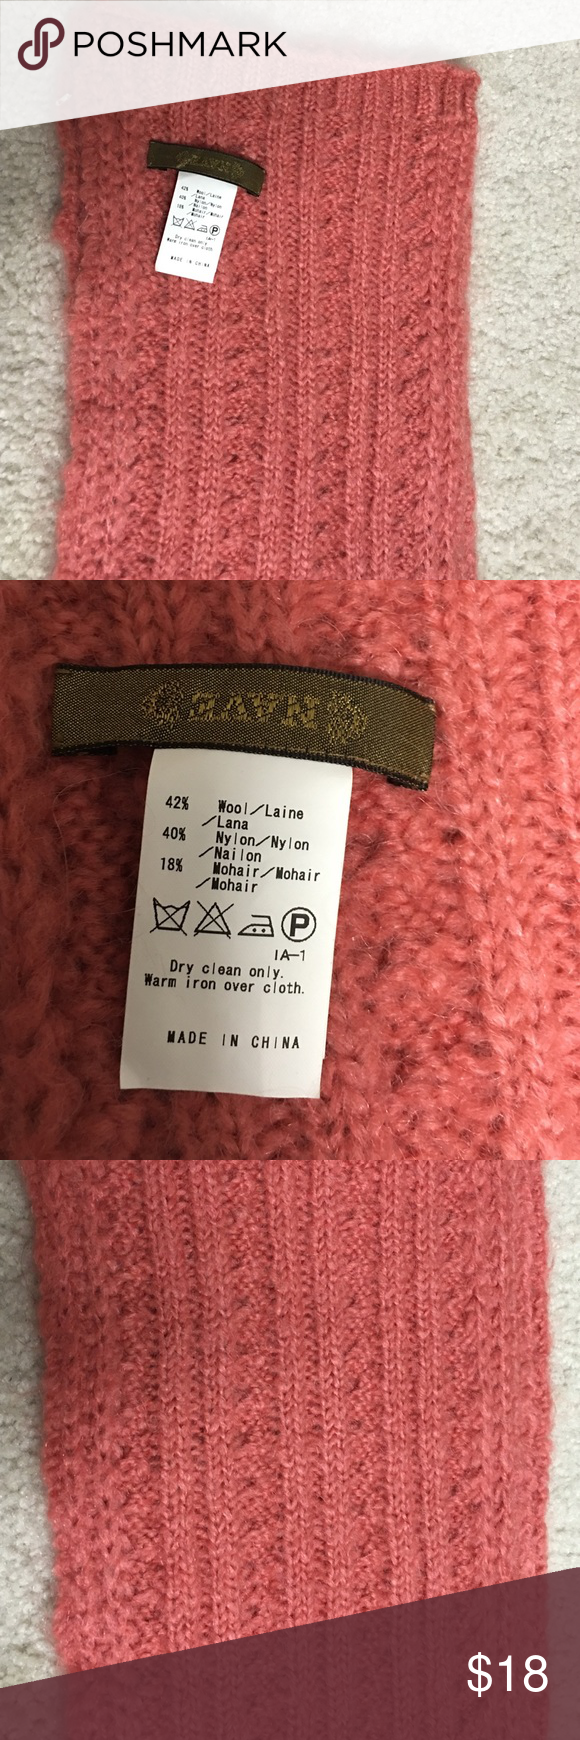 "Brand new Nave pink scarf without tag!!! Brand new!!!! Nave Pink long scarf 7""Wx88""L 42% wool 40% nylon 18% mohair Dry clean only nave Accessories Scarves & Wraps"